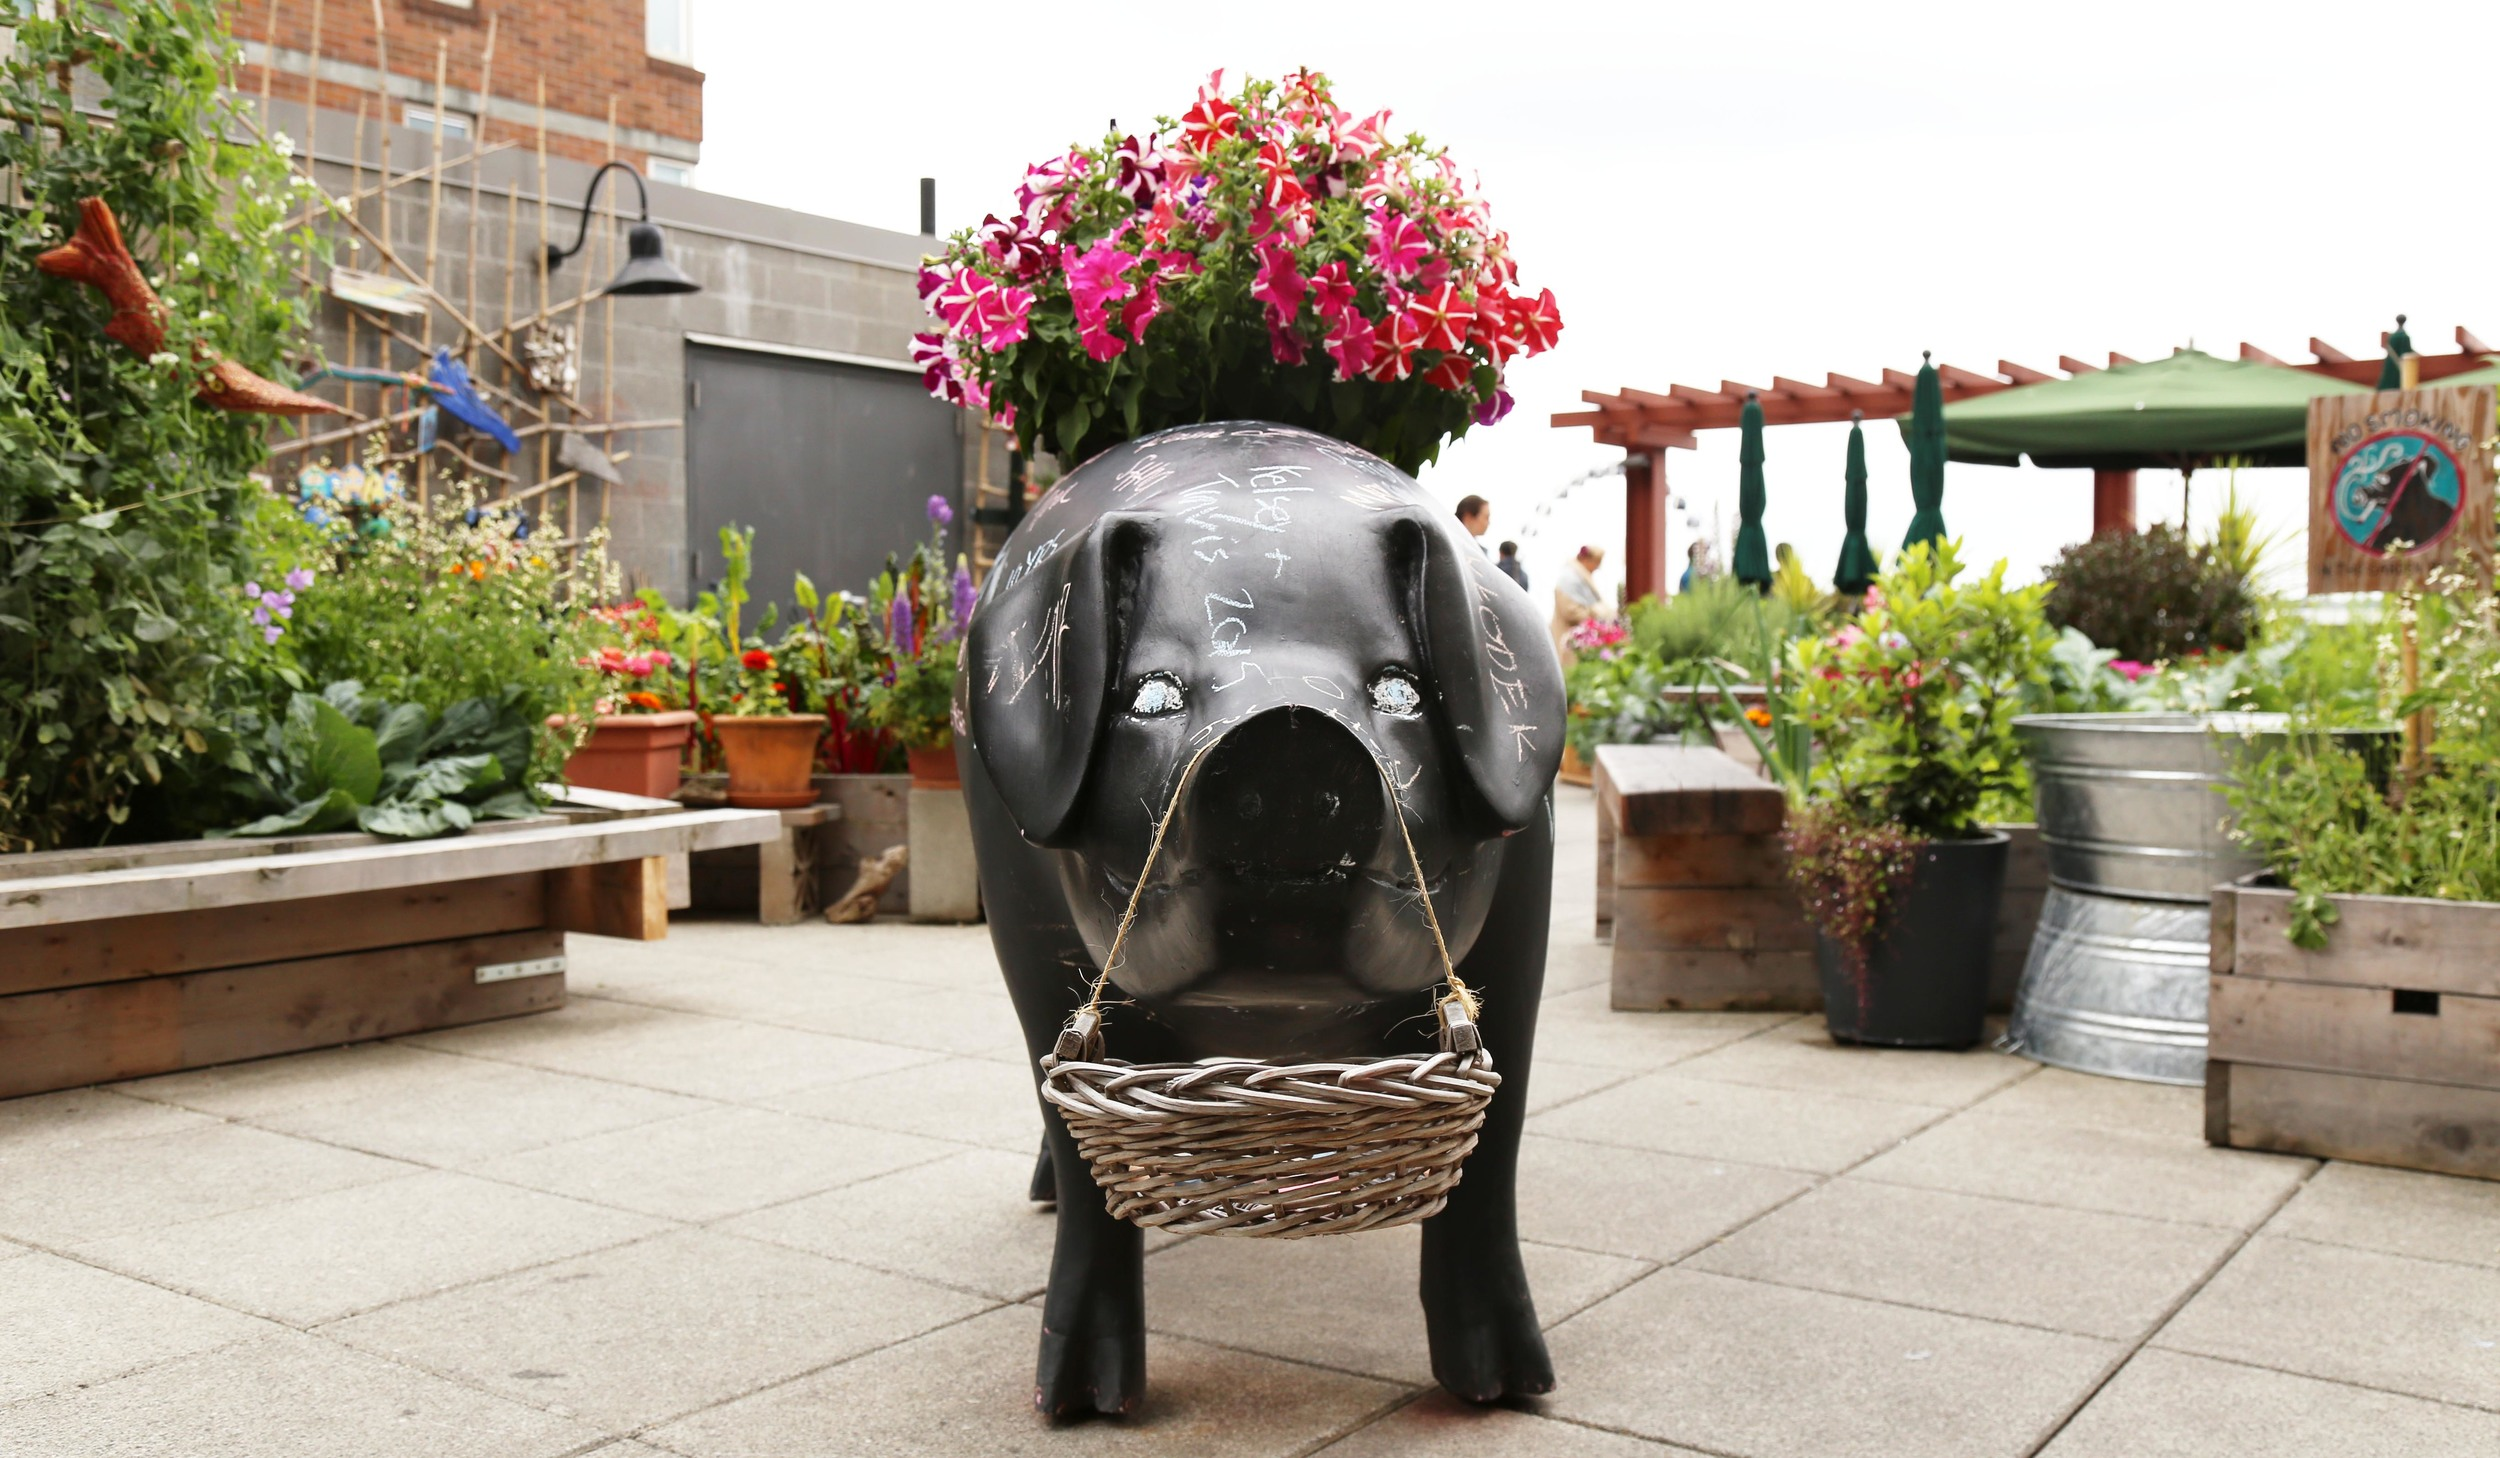 Cute pig welcomes you to the Urban Garden in Pike Place Market